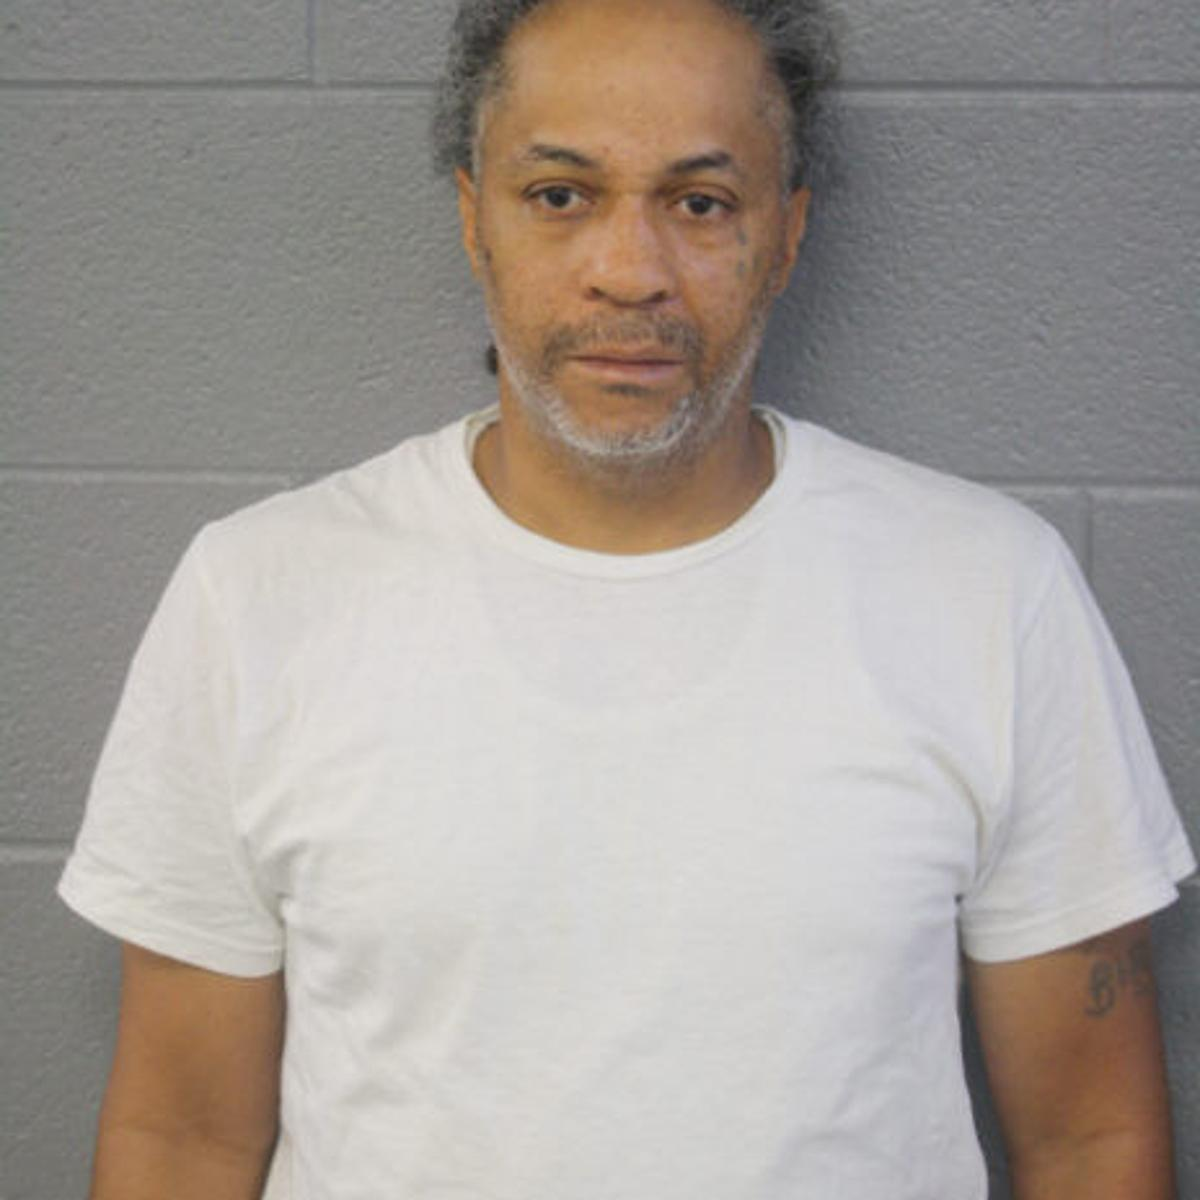 Chicago man, ID'd by CPD as a former confidential informant